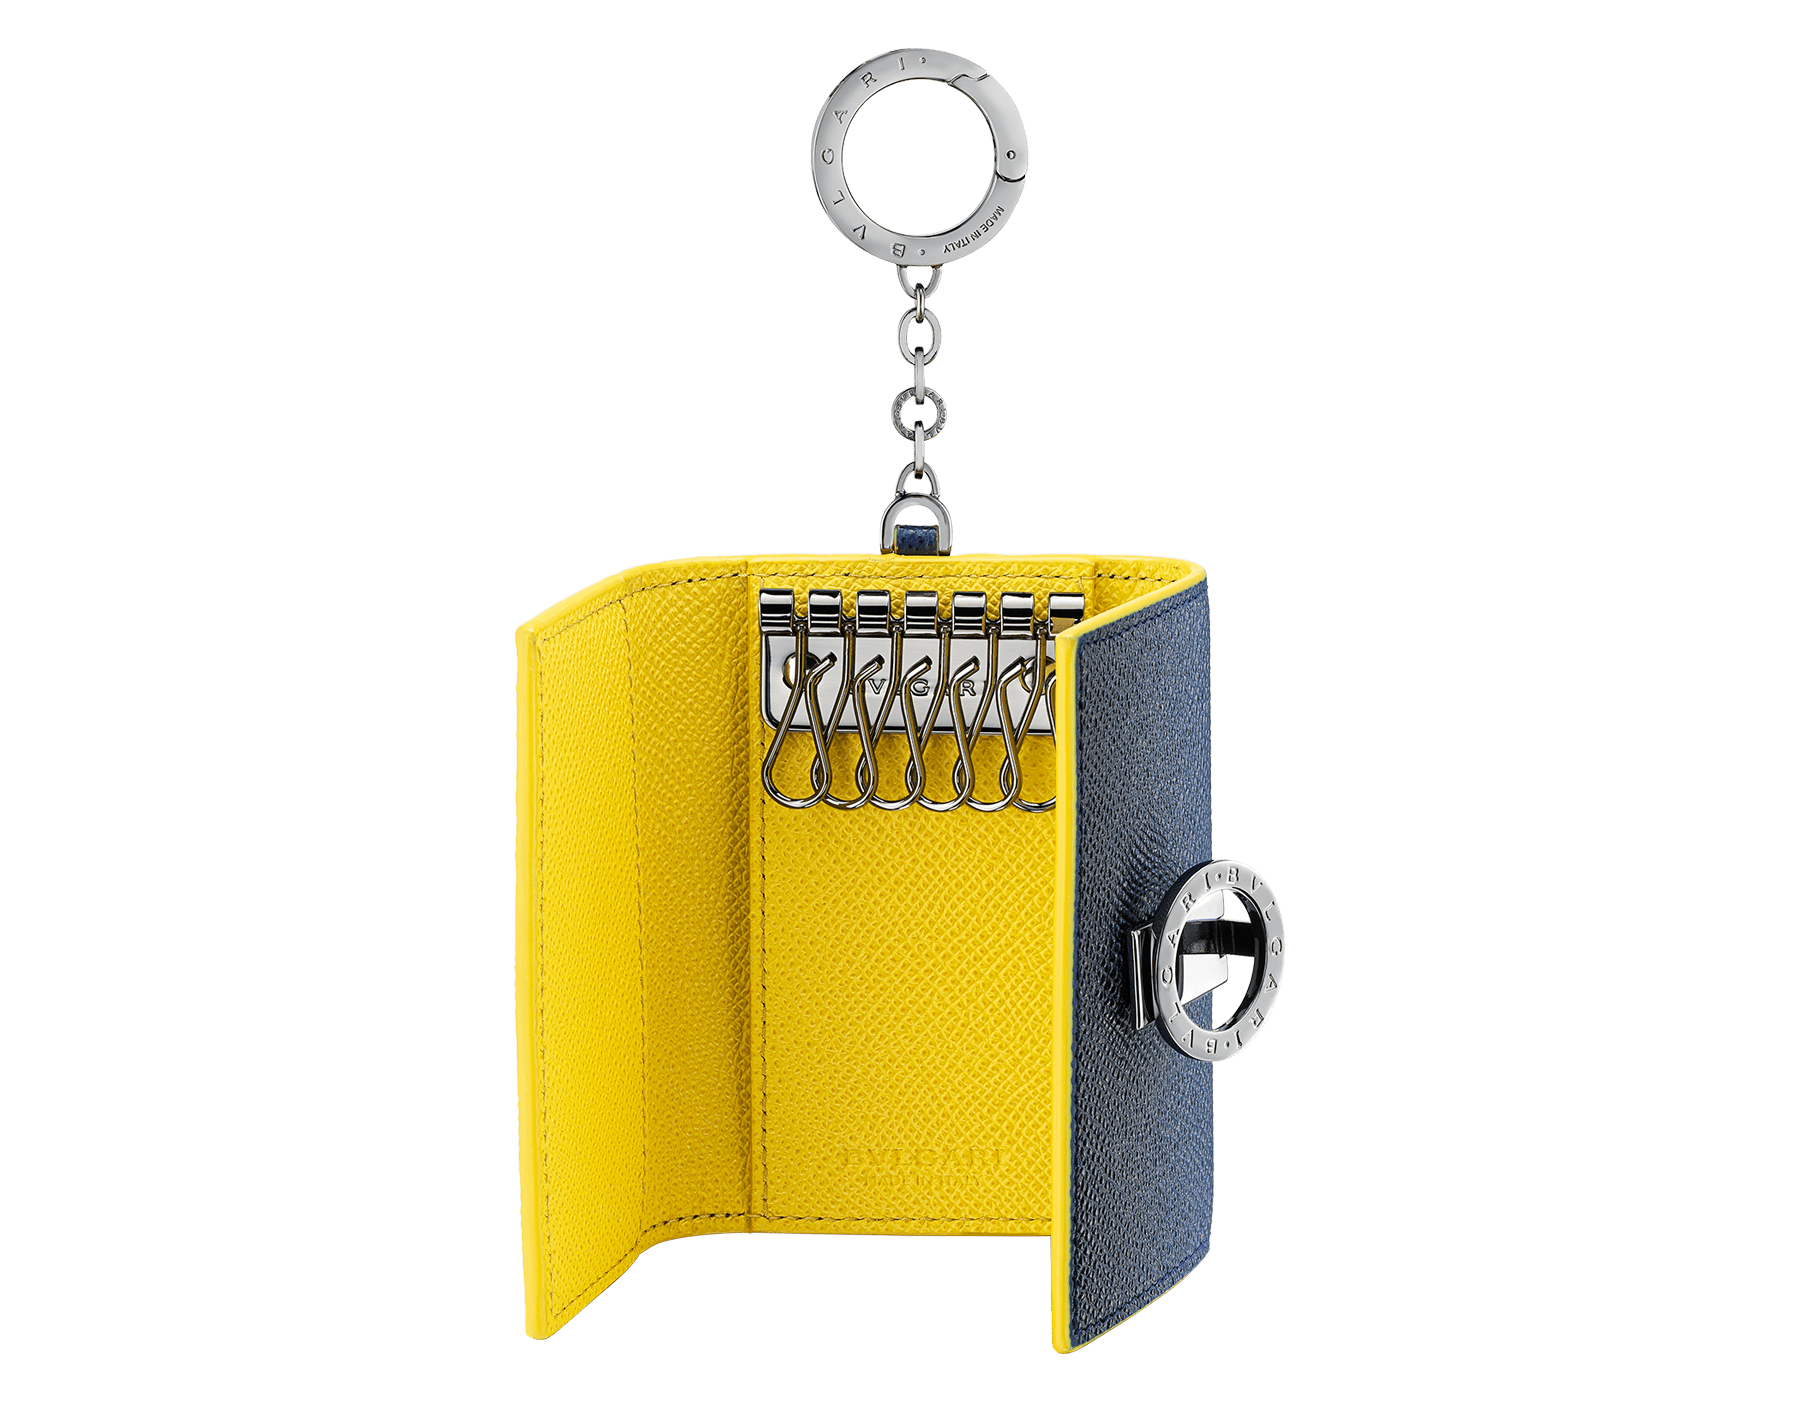 BVLGARI BVLGARI key holder in denim sapphire and daisy topaz grain calf leather. Iconic logo décor and snap hook in palladium-plated brass. 289866 image 2